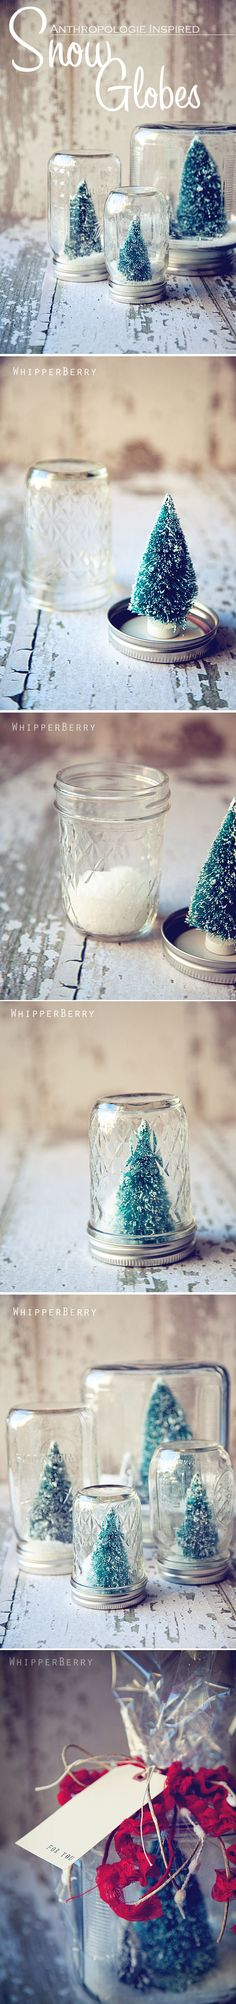 Anthro Inspired Snow Globes